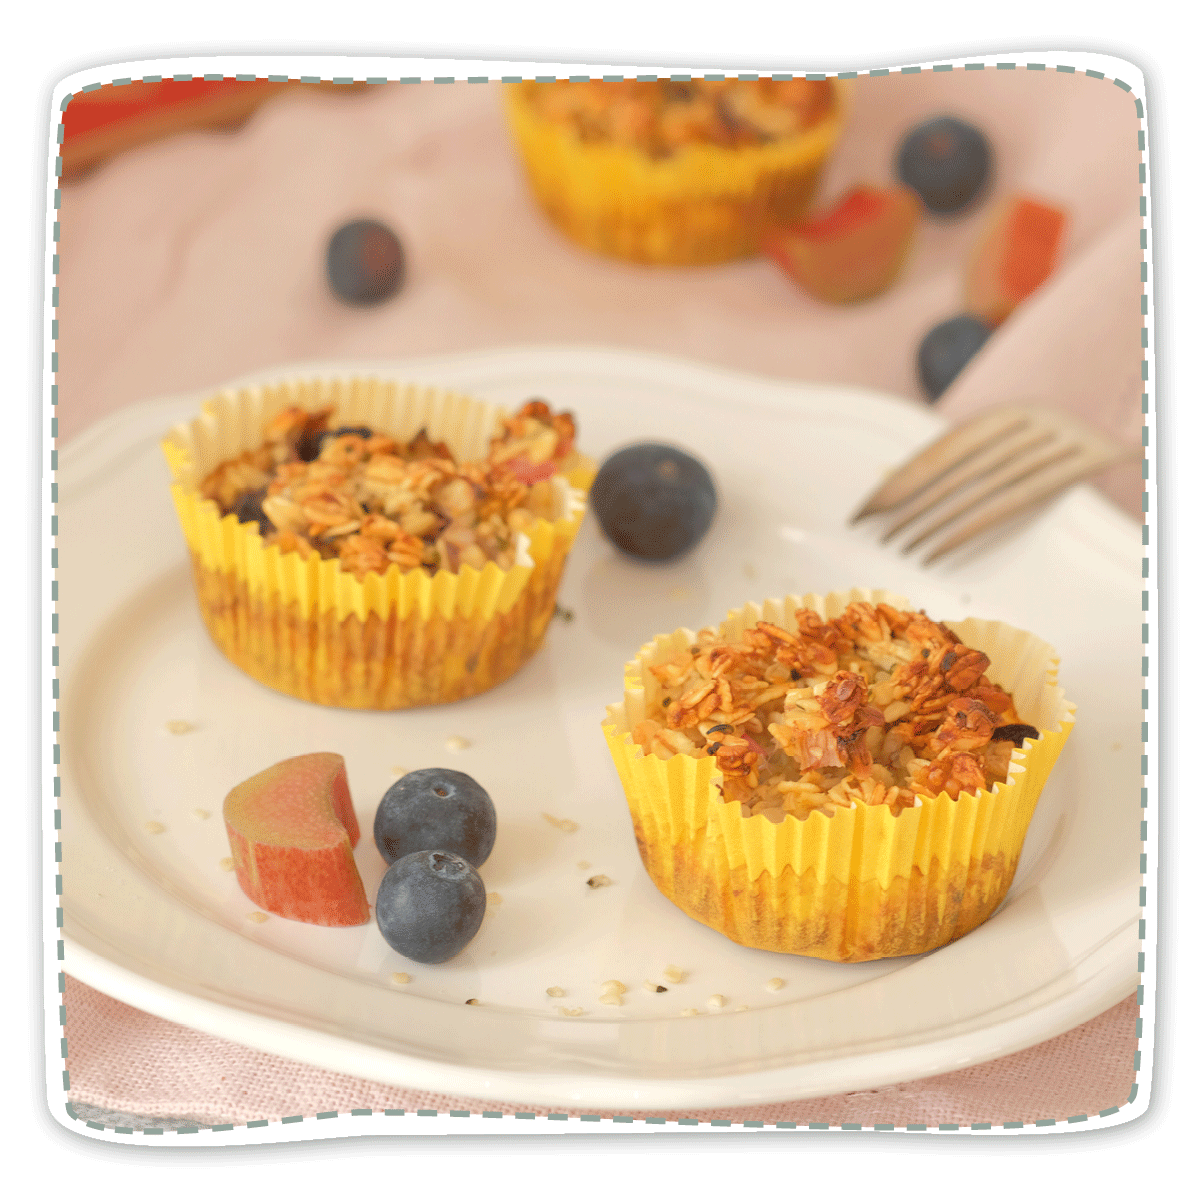 Baked Oatmeal mit Rhabarber